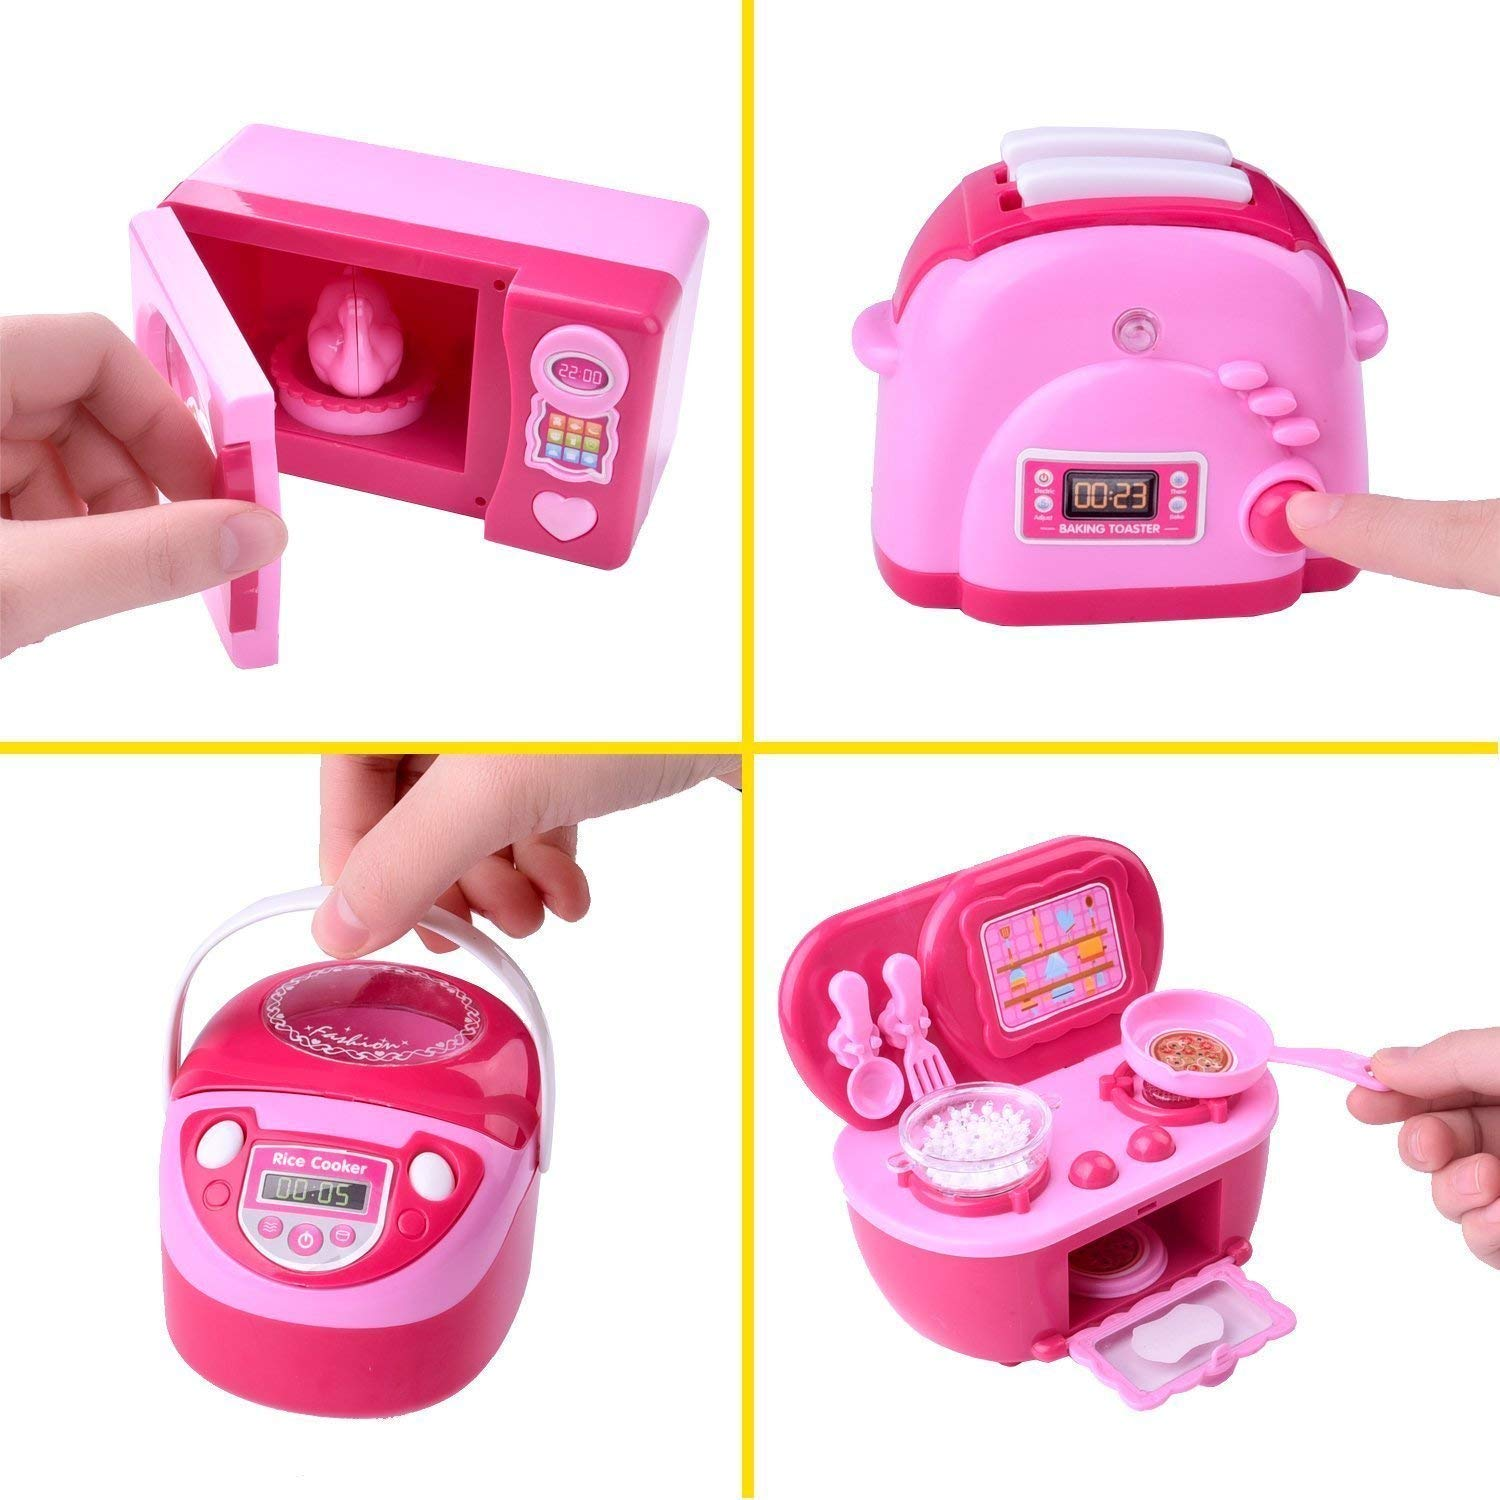 Kitchen Toys for Kids, 6PCs Mini Electric Simulation Play Kitchen Accessories Inculiding Microwave Oven, Toaster, Refrigerator, Rice Cooker, Egg Stepper, Pink Kids Cooking Set Appliances for Girls by FUN LITTLE TOYS (Image #4)